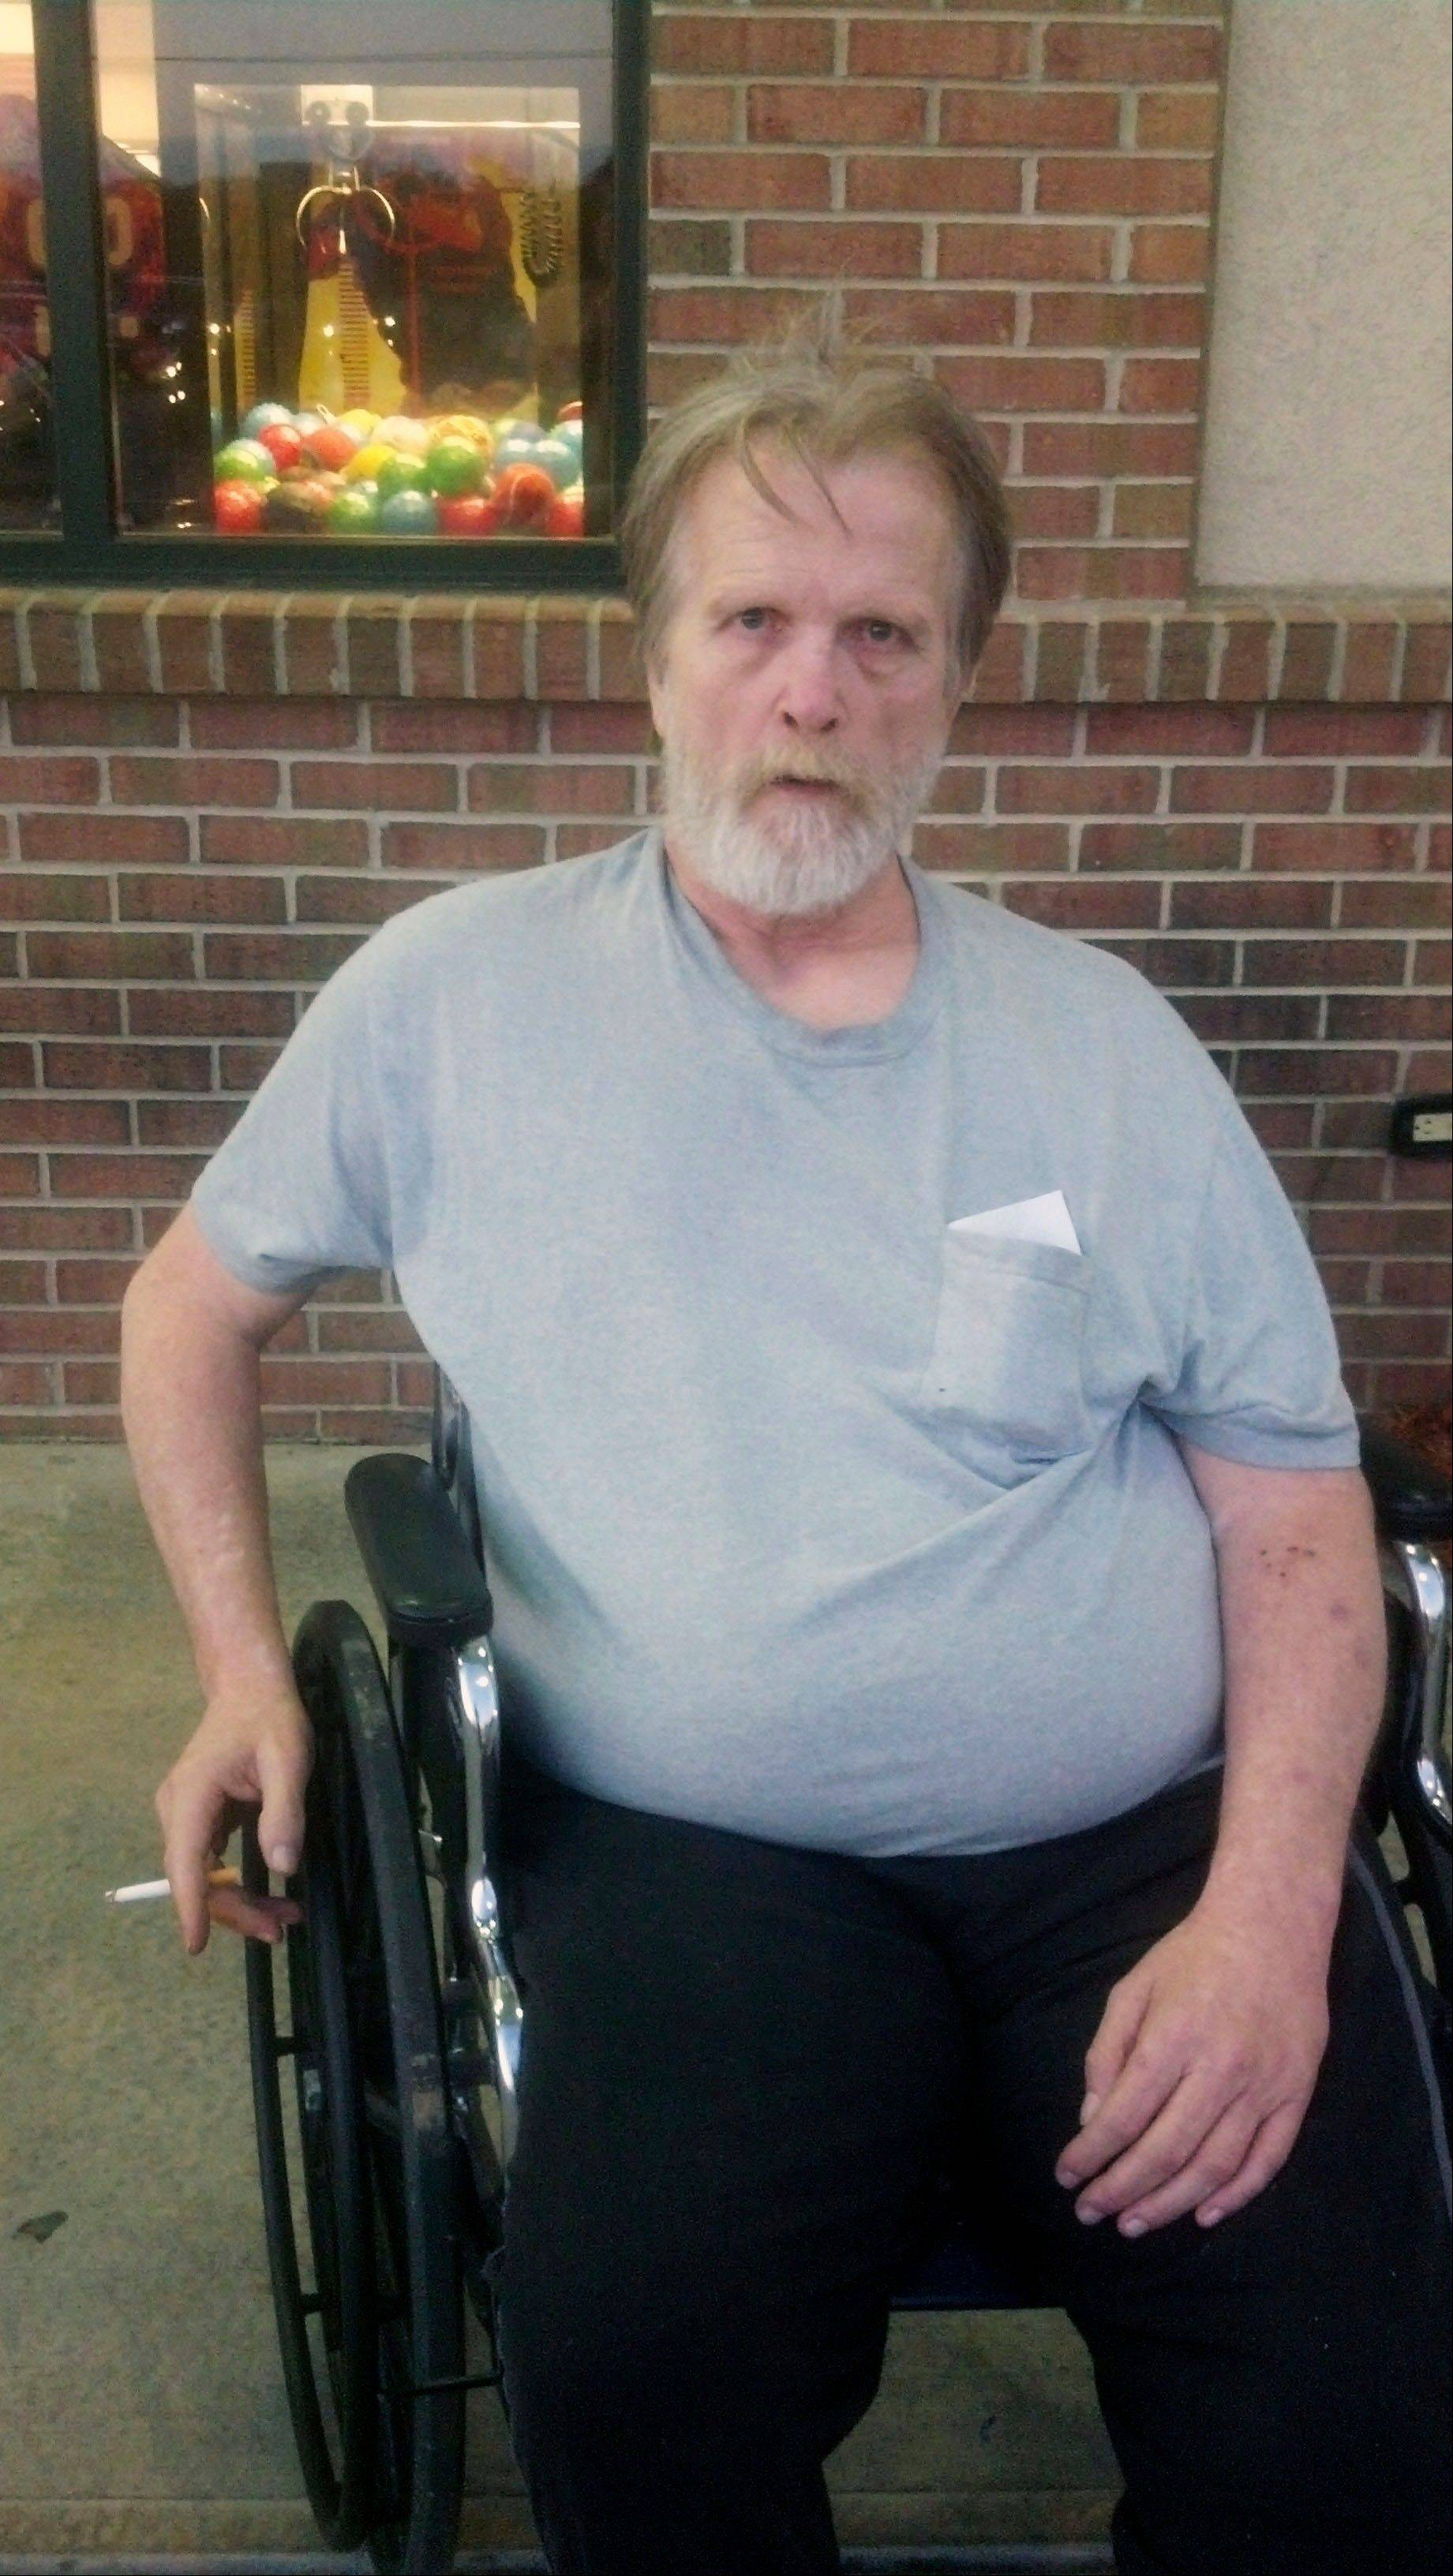 Thomas Hearty, 56, sits outside a Denny's at a truck stop in Alorton, Ill., on July 31 after workers from the Lebanon Care Center dropped him off there.